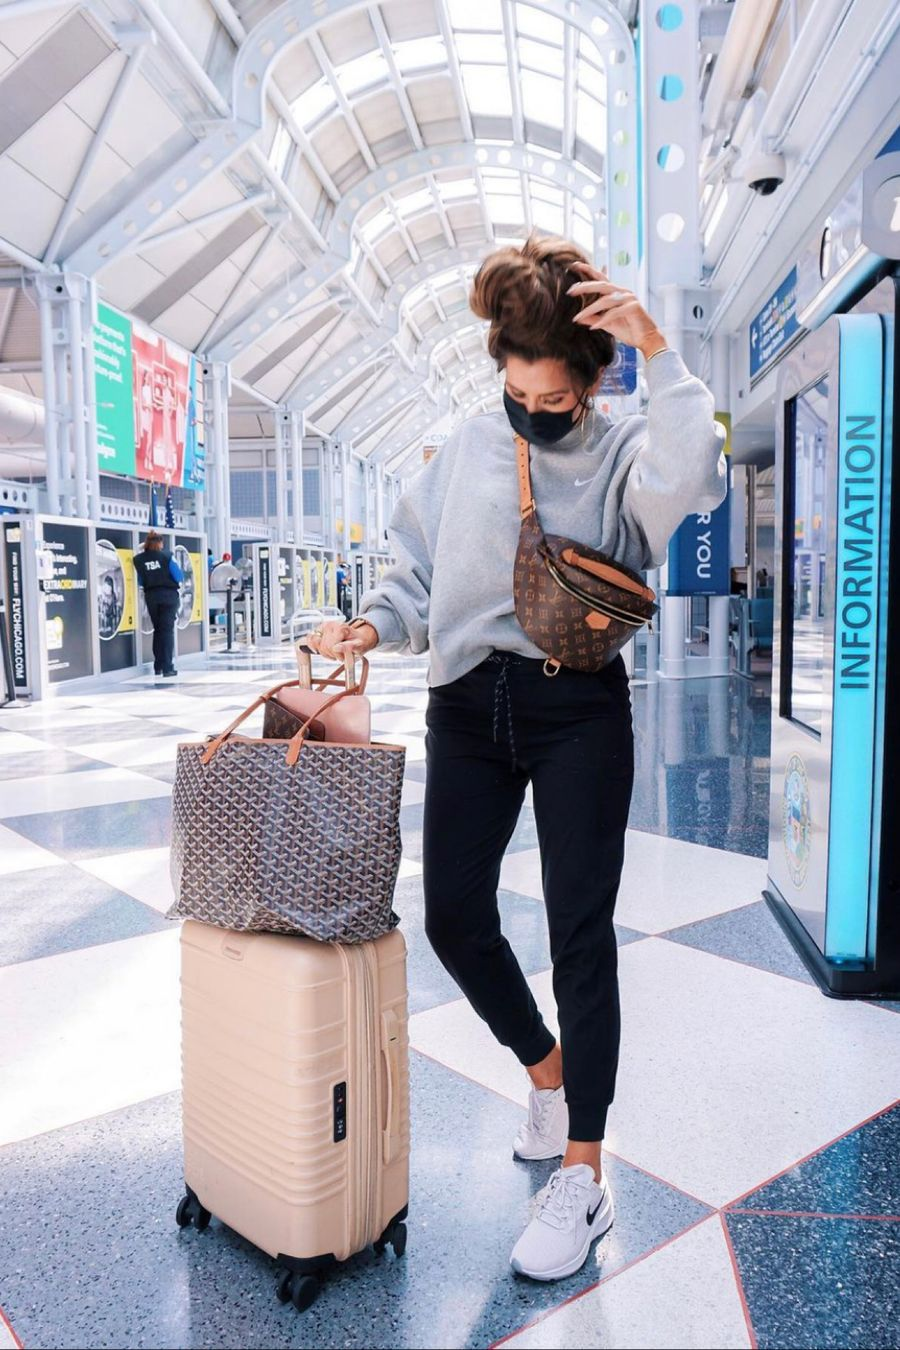 Emily ann gemma travel outfit ideas, airport outfits, airport travel style, Emily gemma, best loungewear, Louis Vuitton bum bum bag, nike sneakers, nordstrom sale, carry-on suitcase, goyard bag   Instagram Recap by popular US life and style blog, The Sweetest Thing: image of Emily Gemma wearing a grrey sweatshirt, black jogger pants, white Nike sneakers and standing next to her luggage.